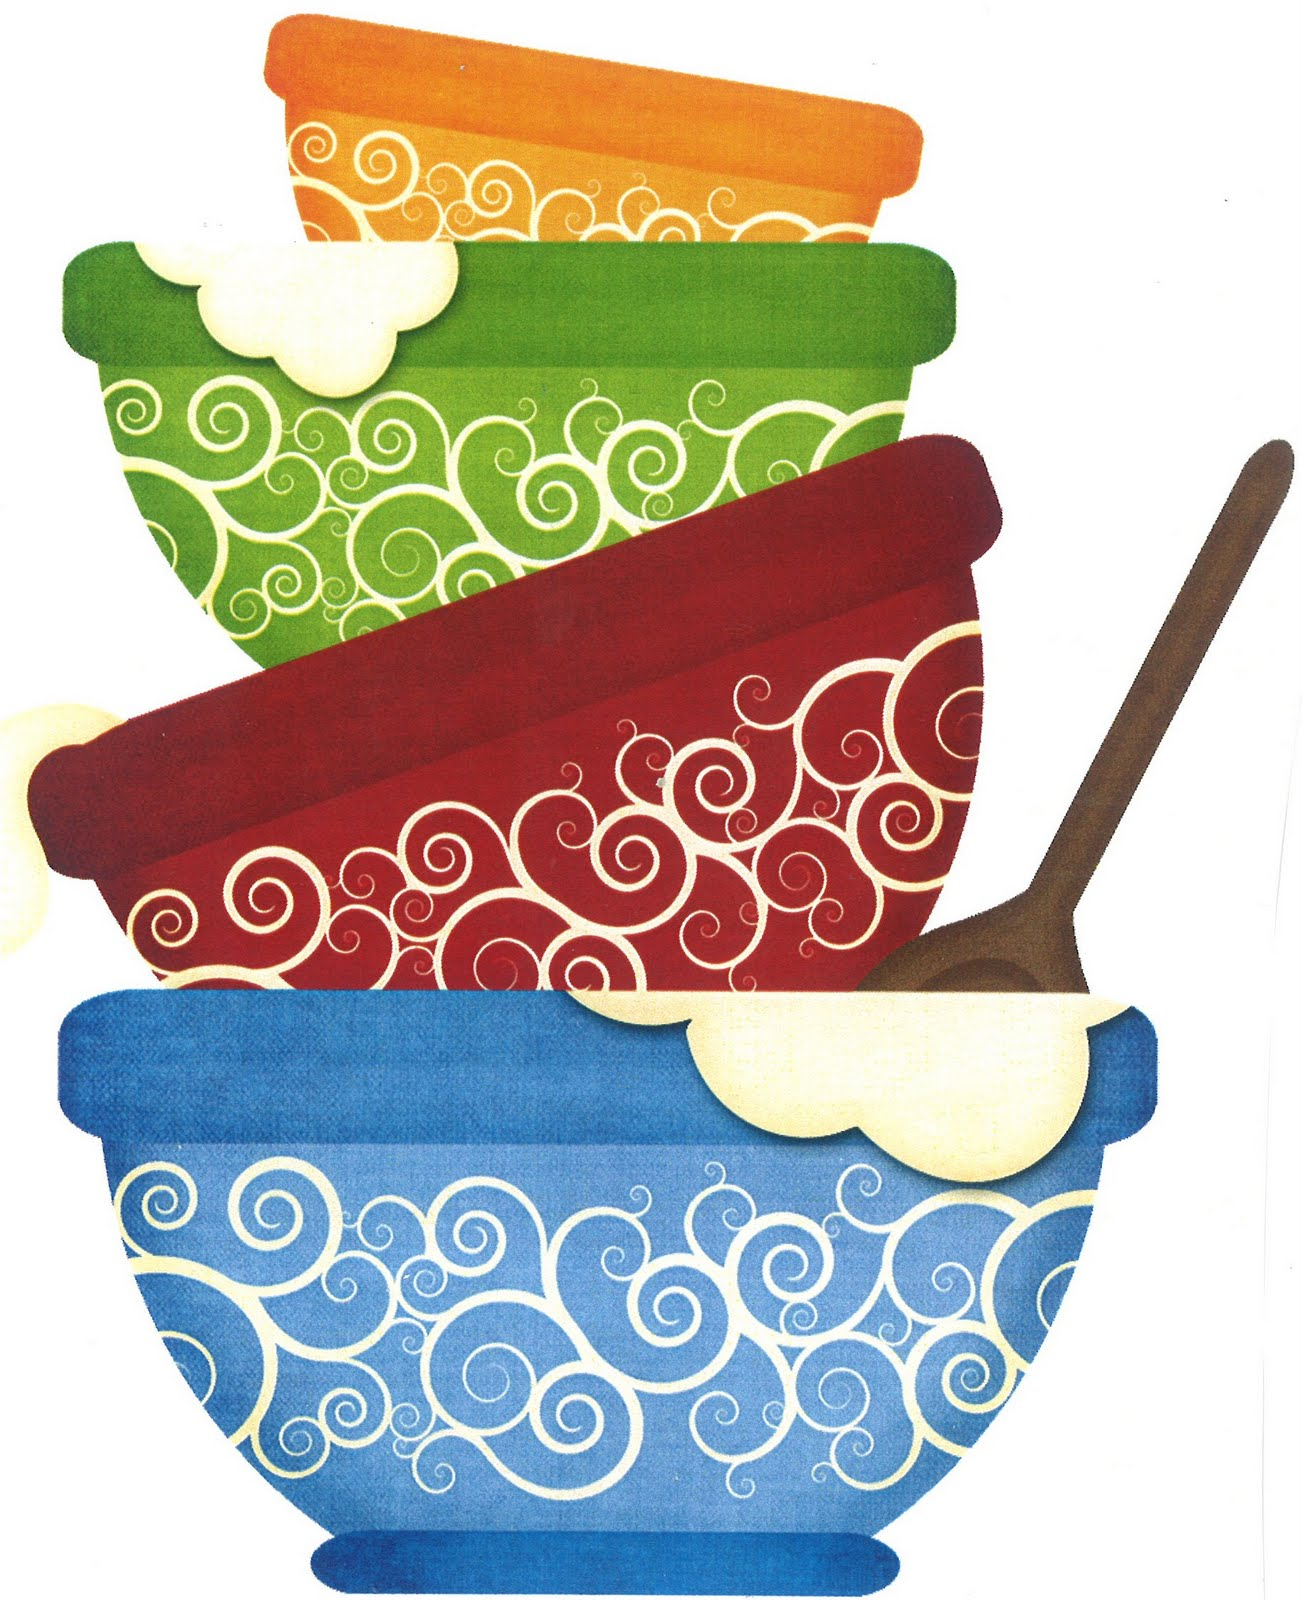 cooking bowl clipart - photo #4